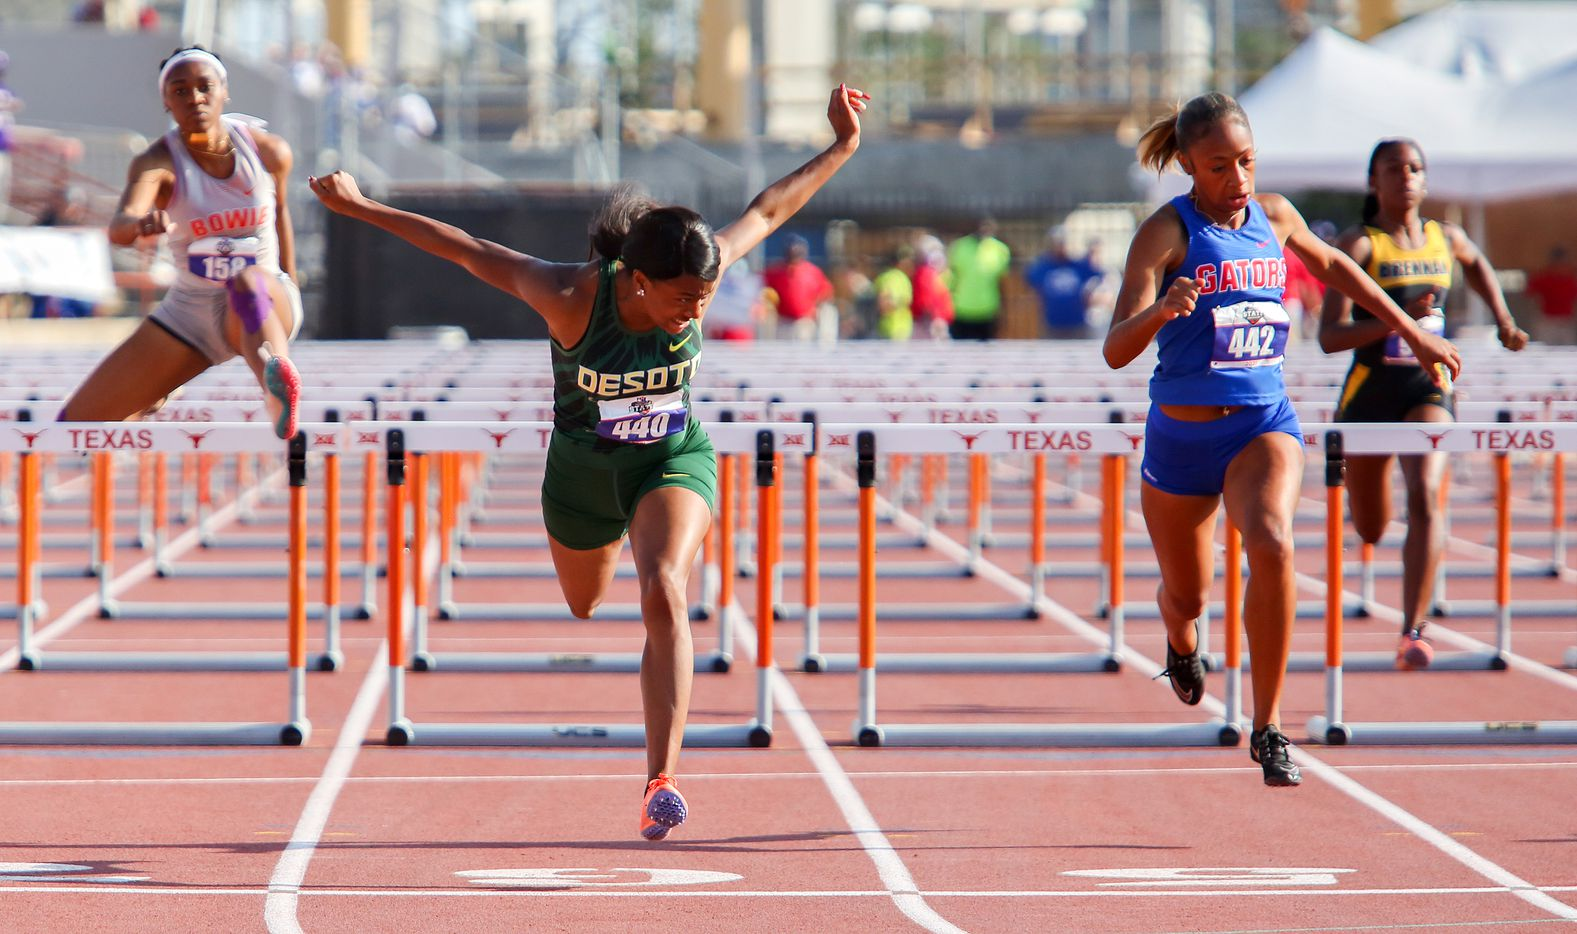 DeSoto's Jalaysi'ya Smith crosses the finish line in the 6A Girls 100 meter hurdles during the UIL state track meet at the Mike A. Myers Stadium, at the University of Texas on May 8, 2021 in Austin, Texas.